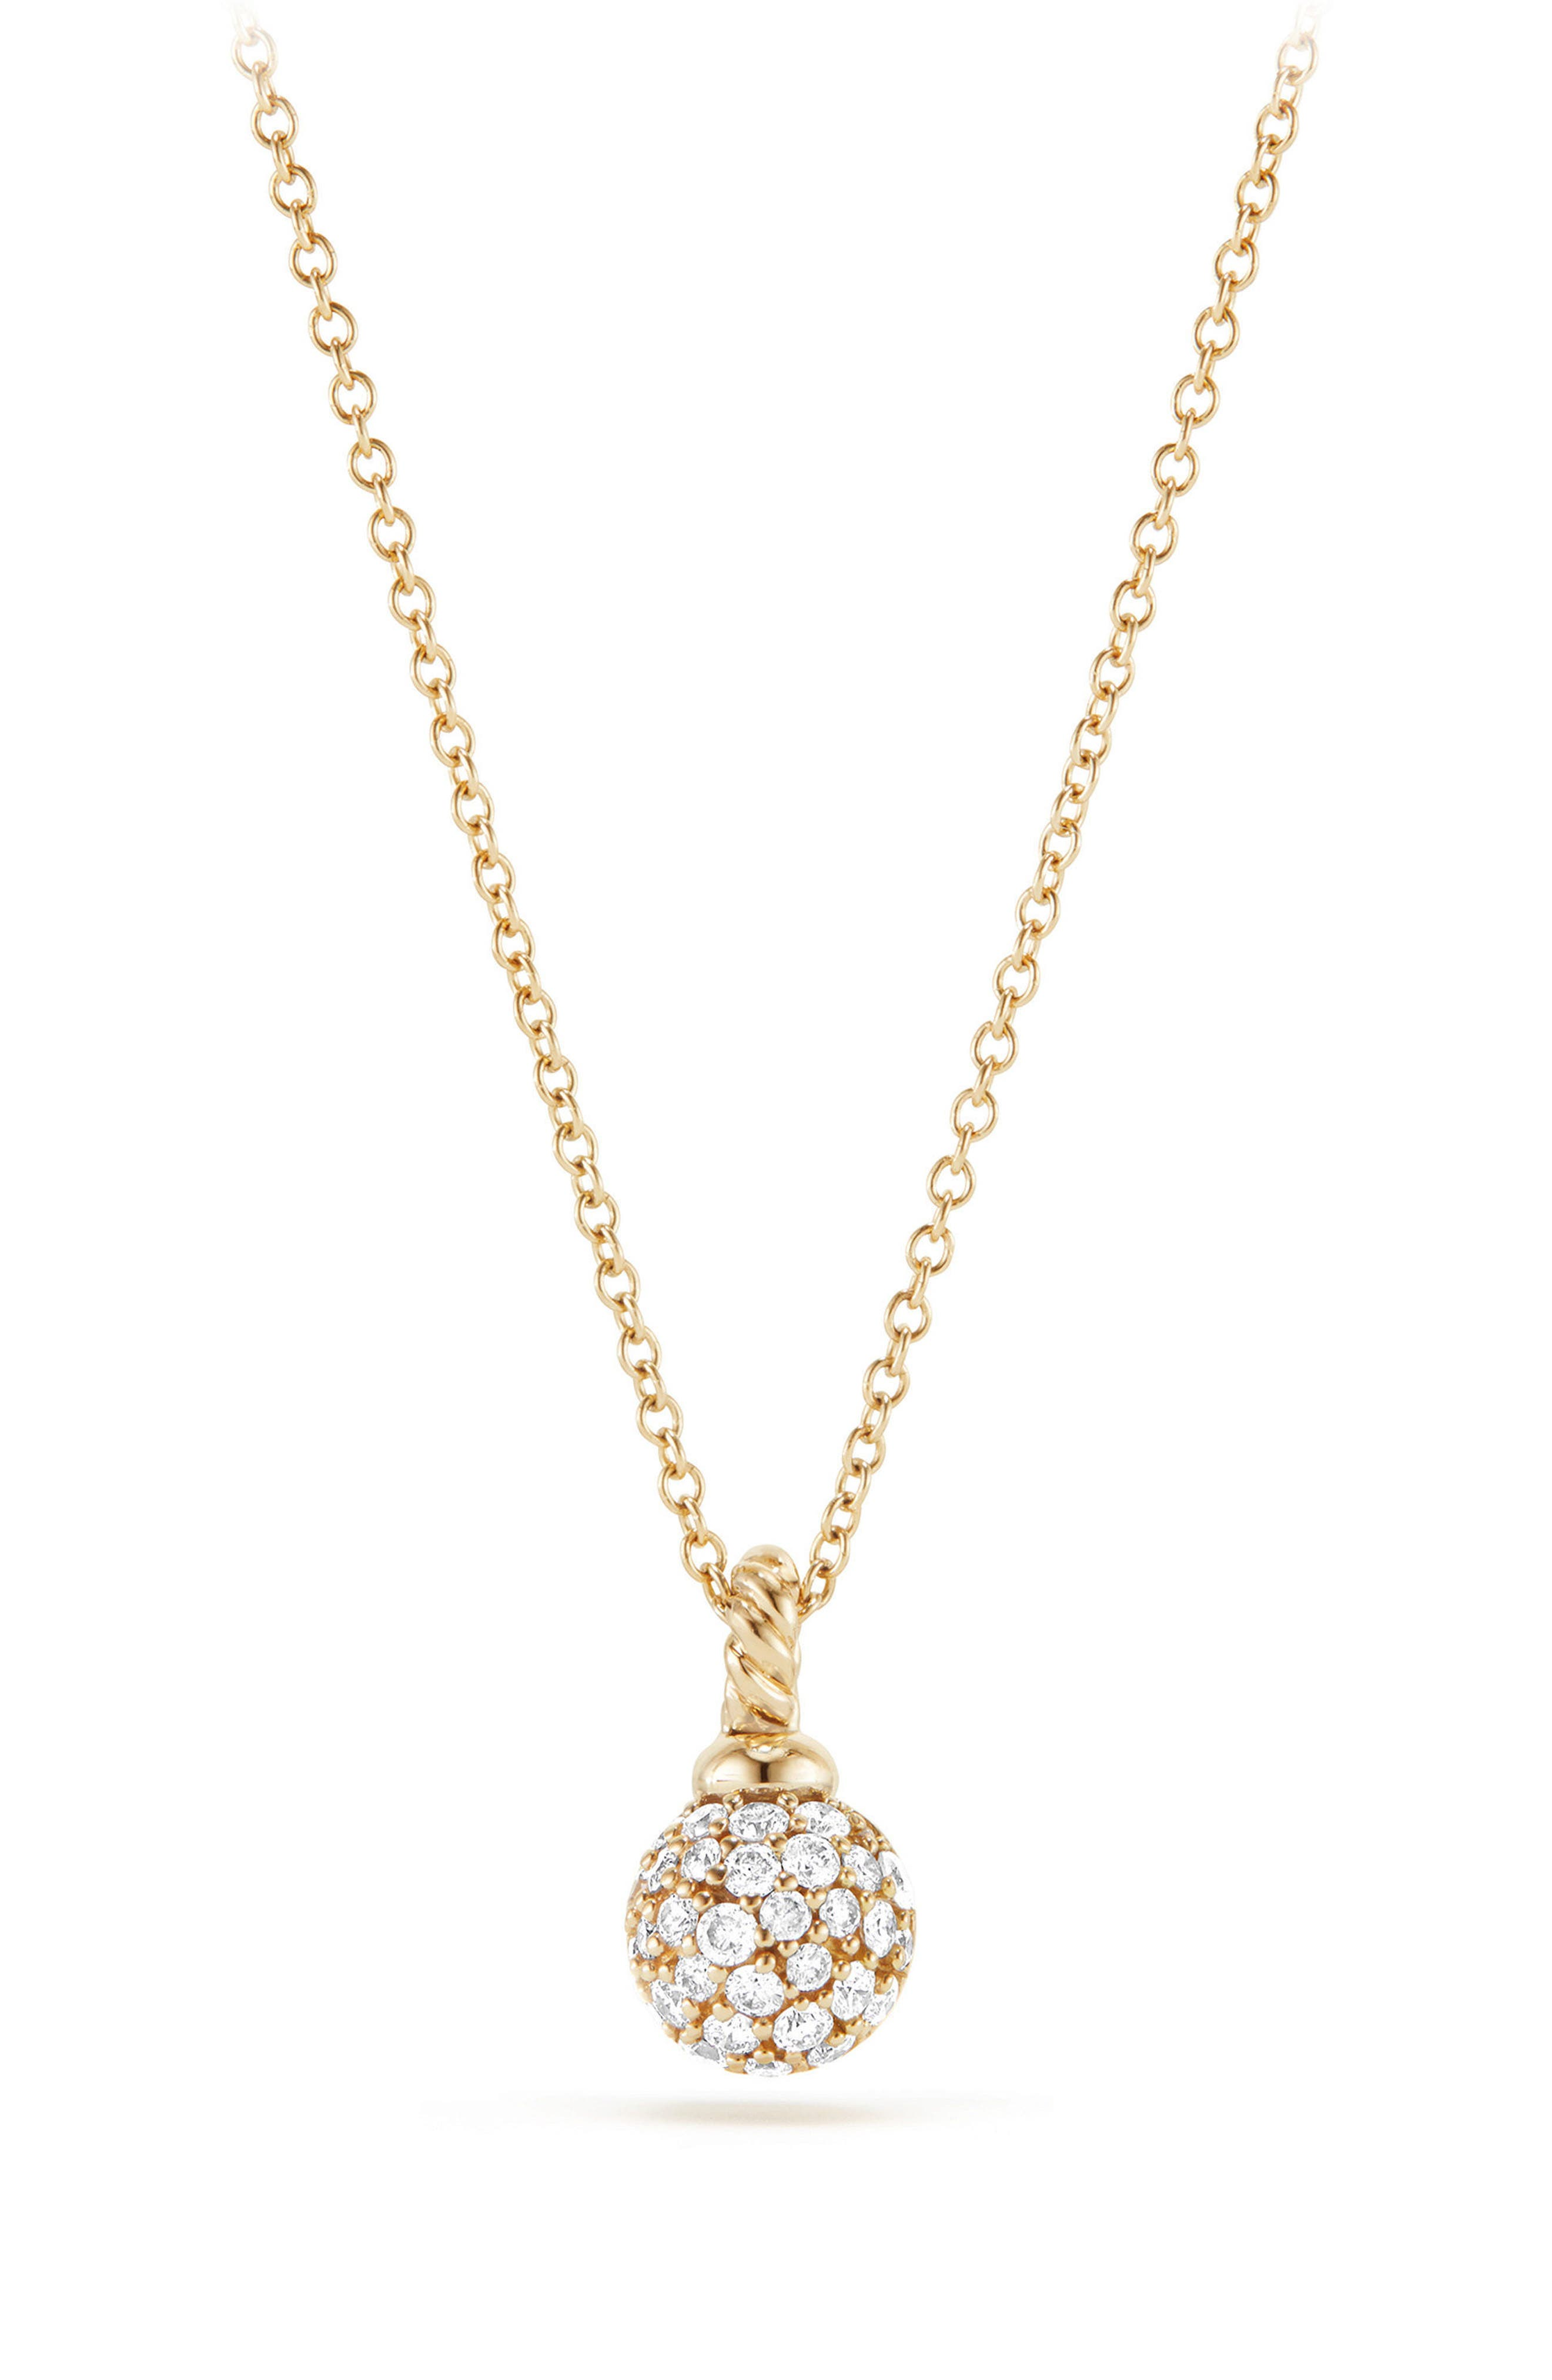 David Yurman Petite Solari Pavé Necklace with Diamonds in 18K Gold